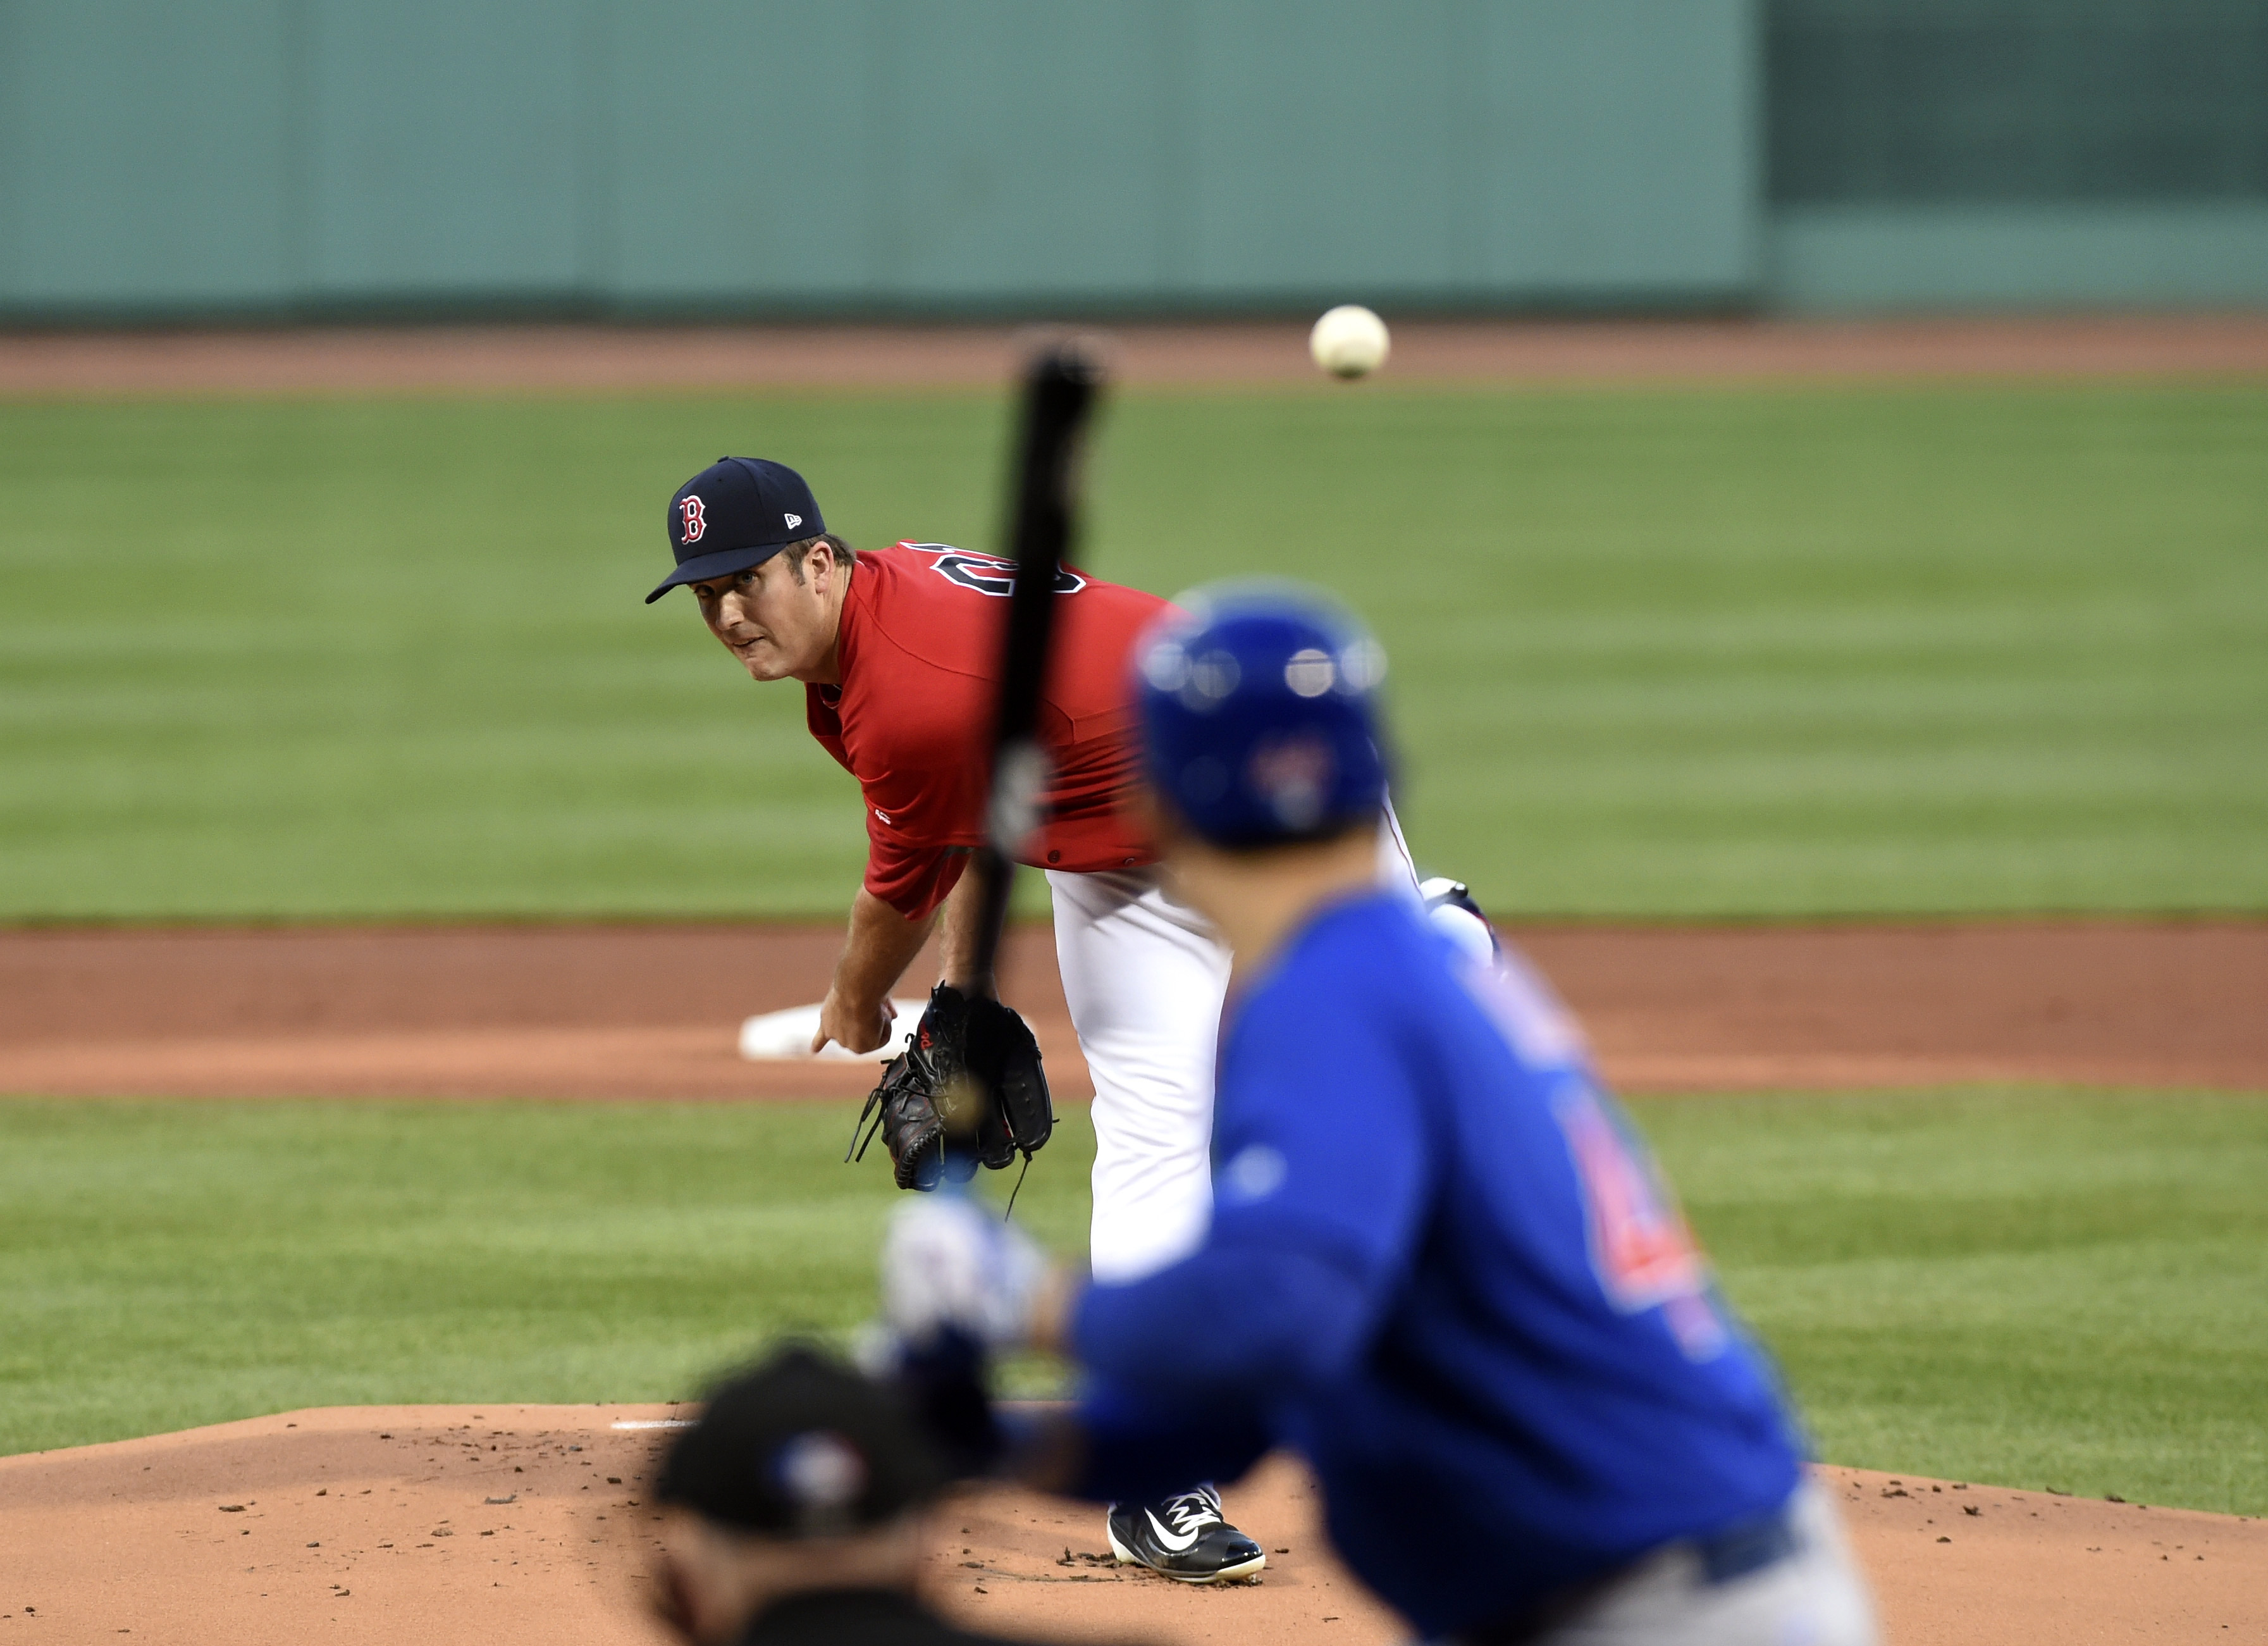 10034652-mlb-chicago-cubs-at-boston-red-sox